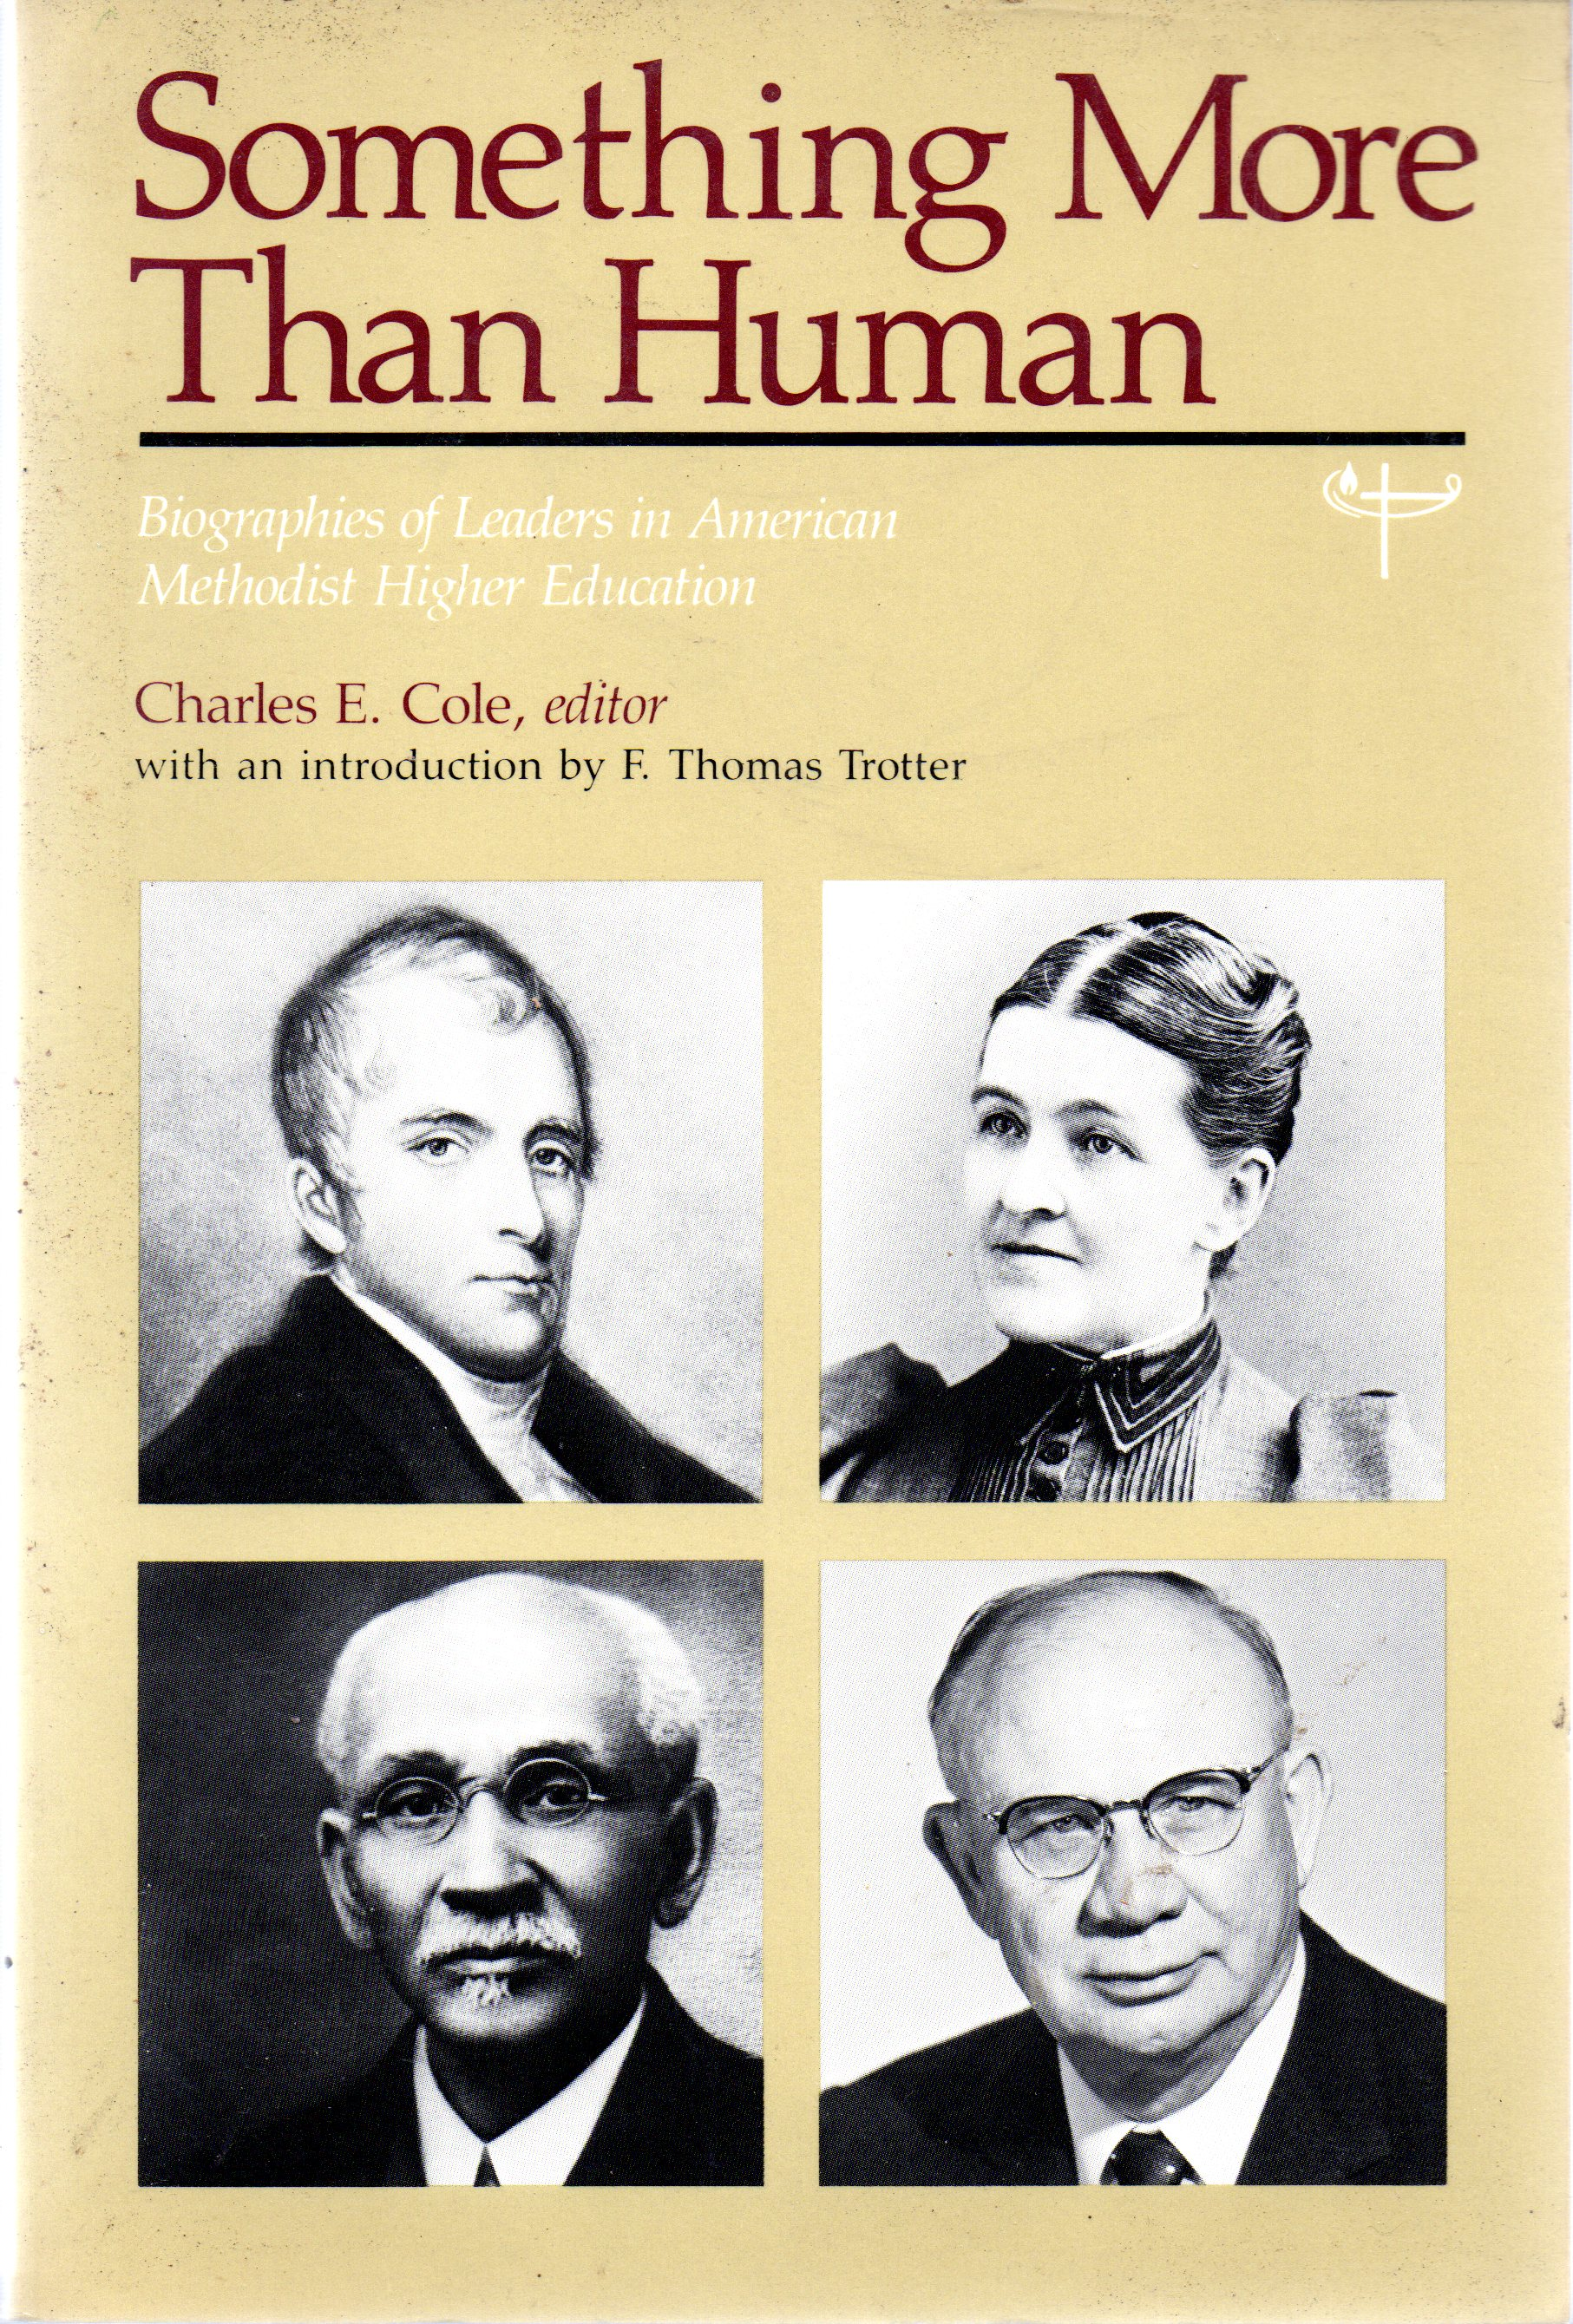 Image for Something More Than Human: Biographies of Leaders In American Methodist Higher Education